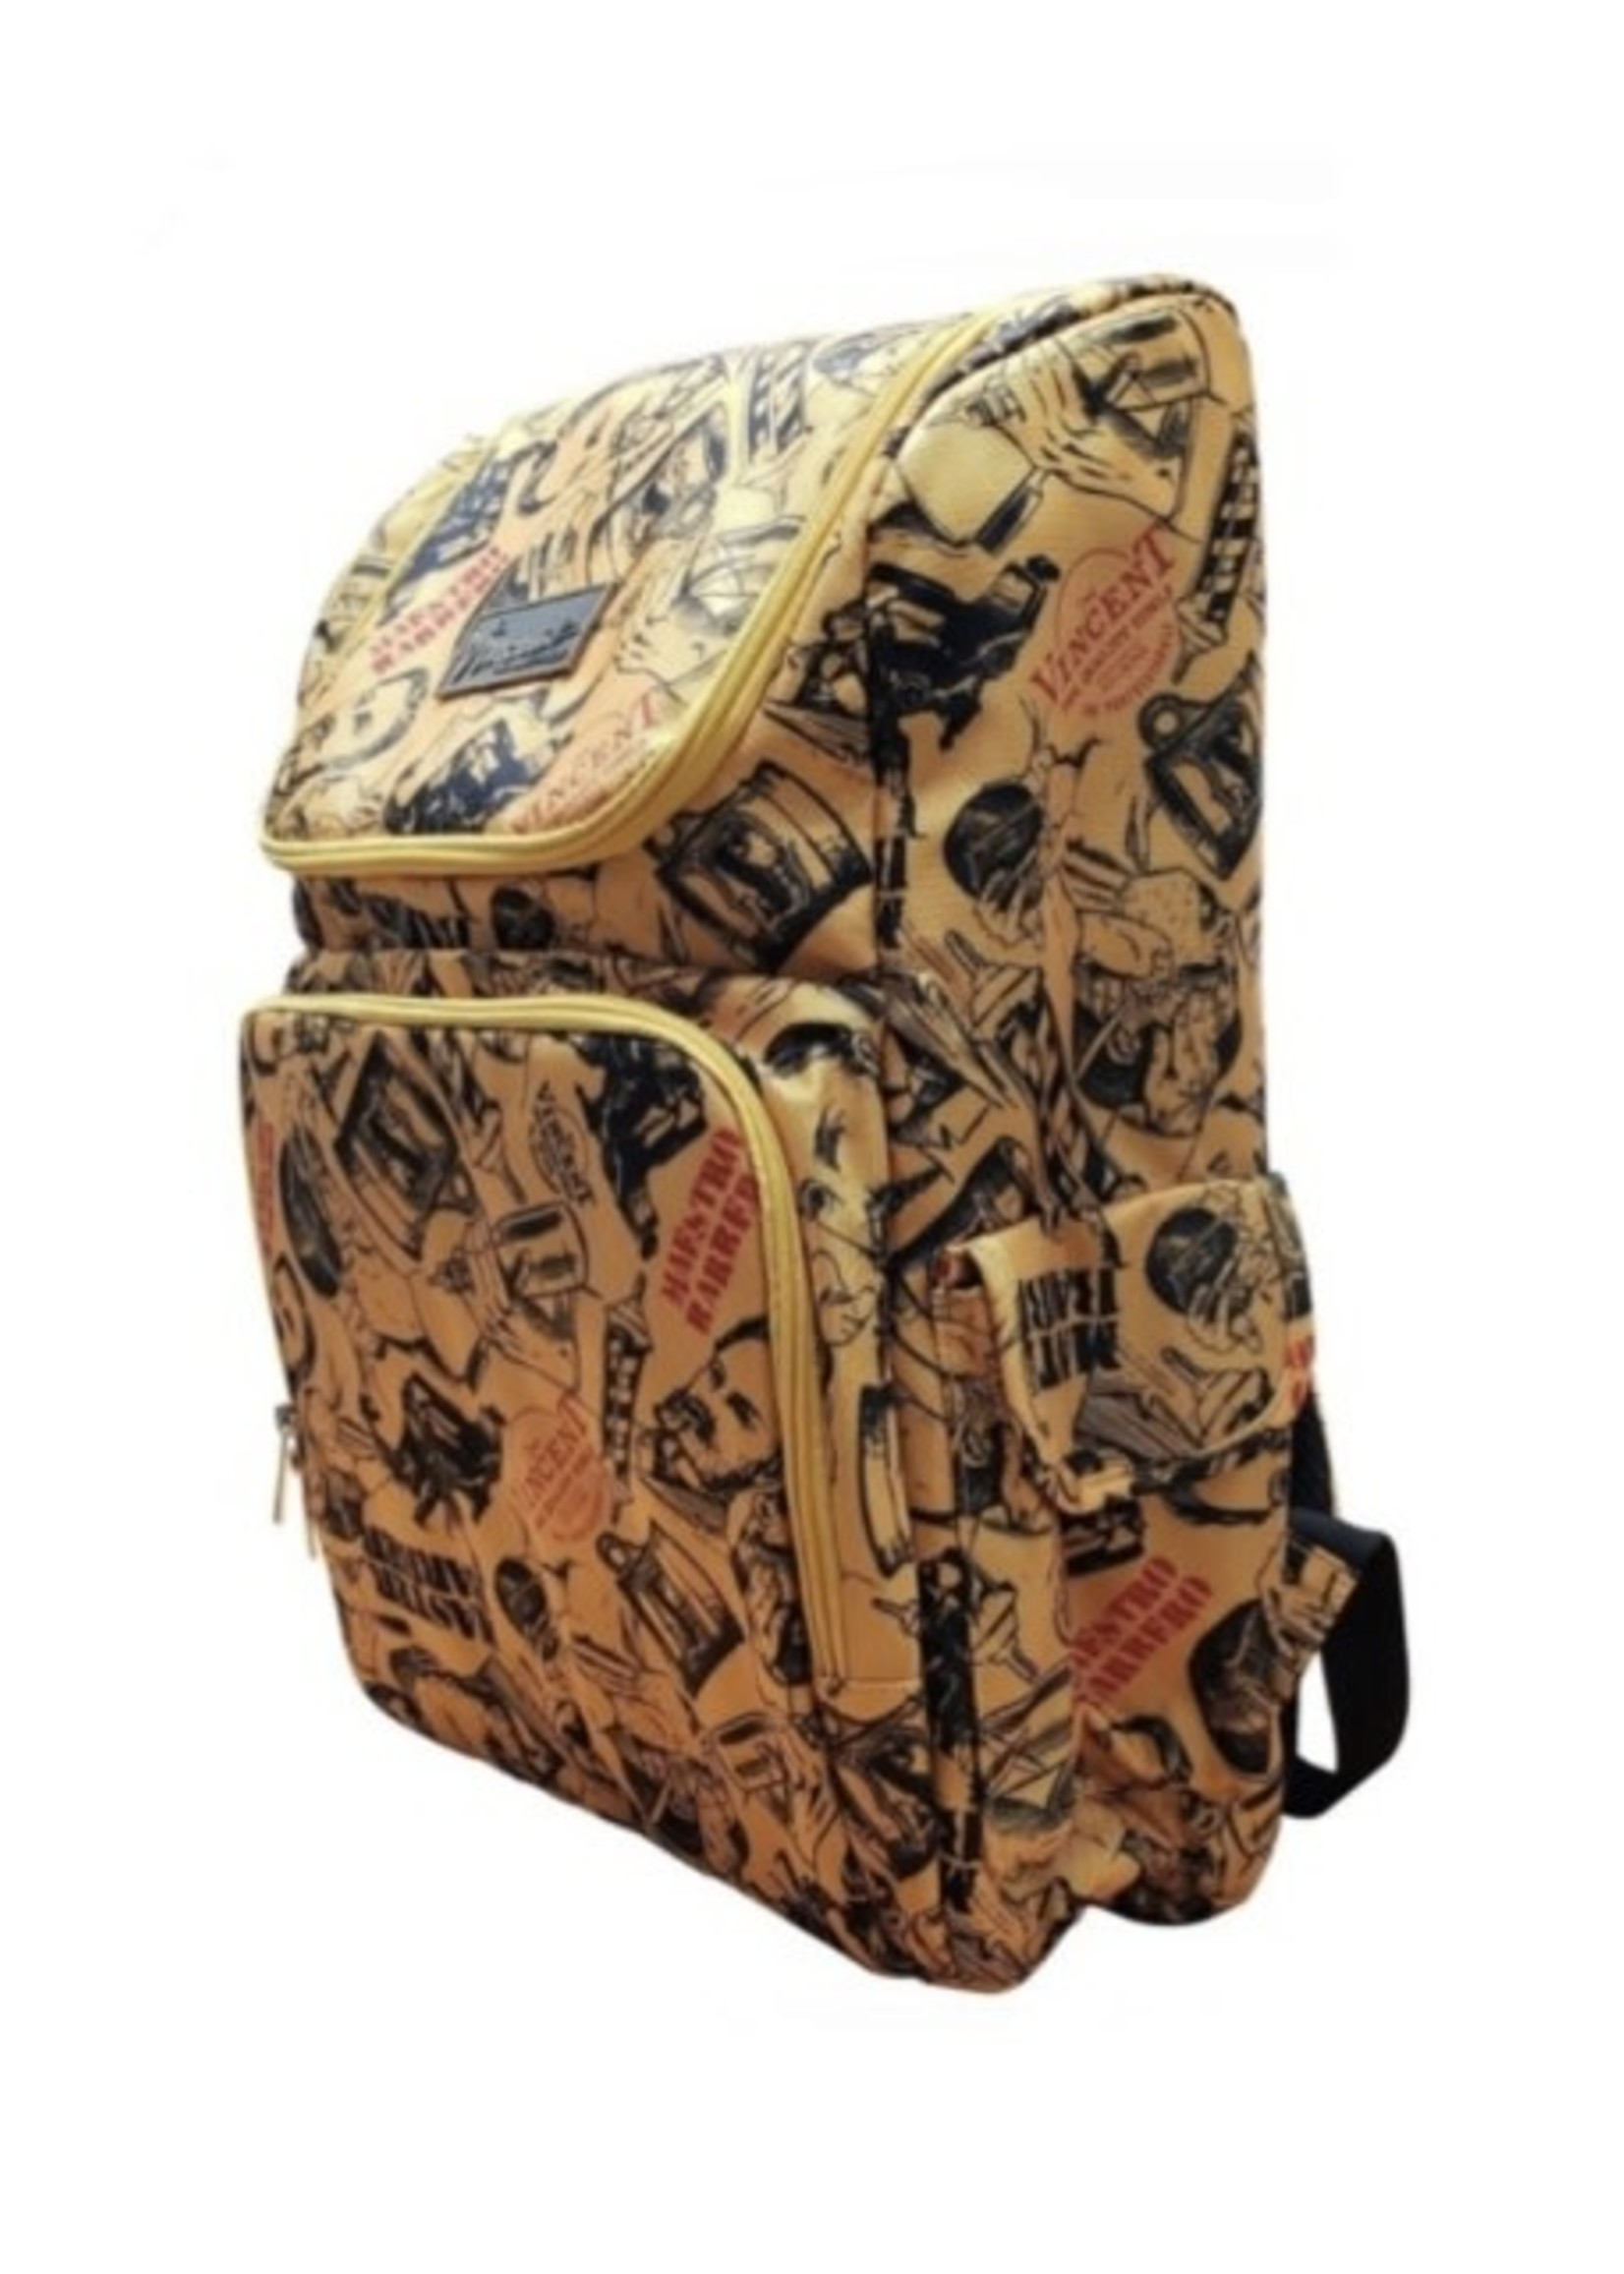 Vincent Vincent BackPack Vintage- Gold